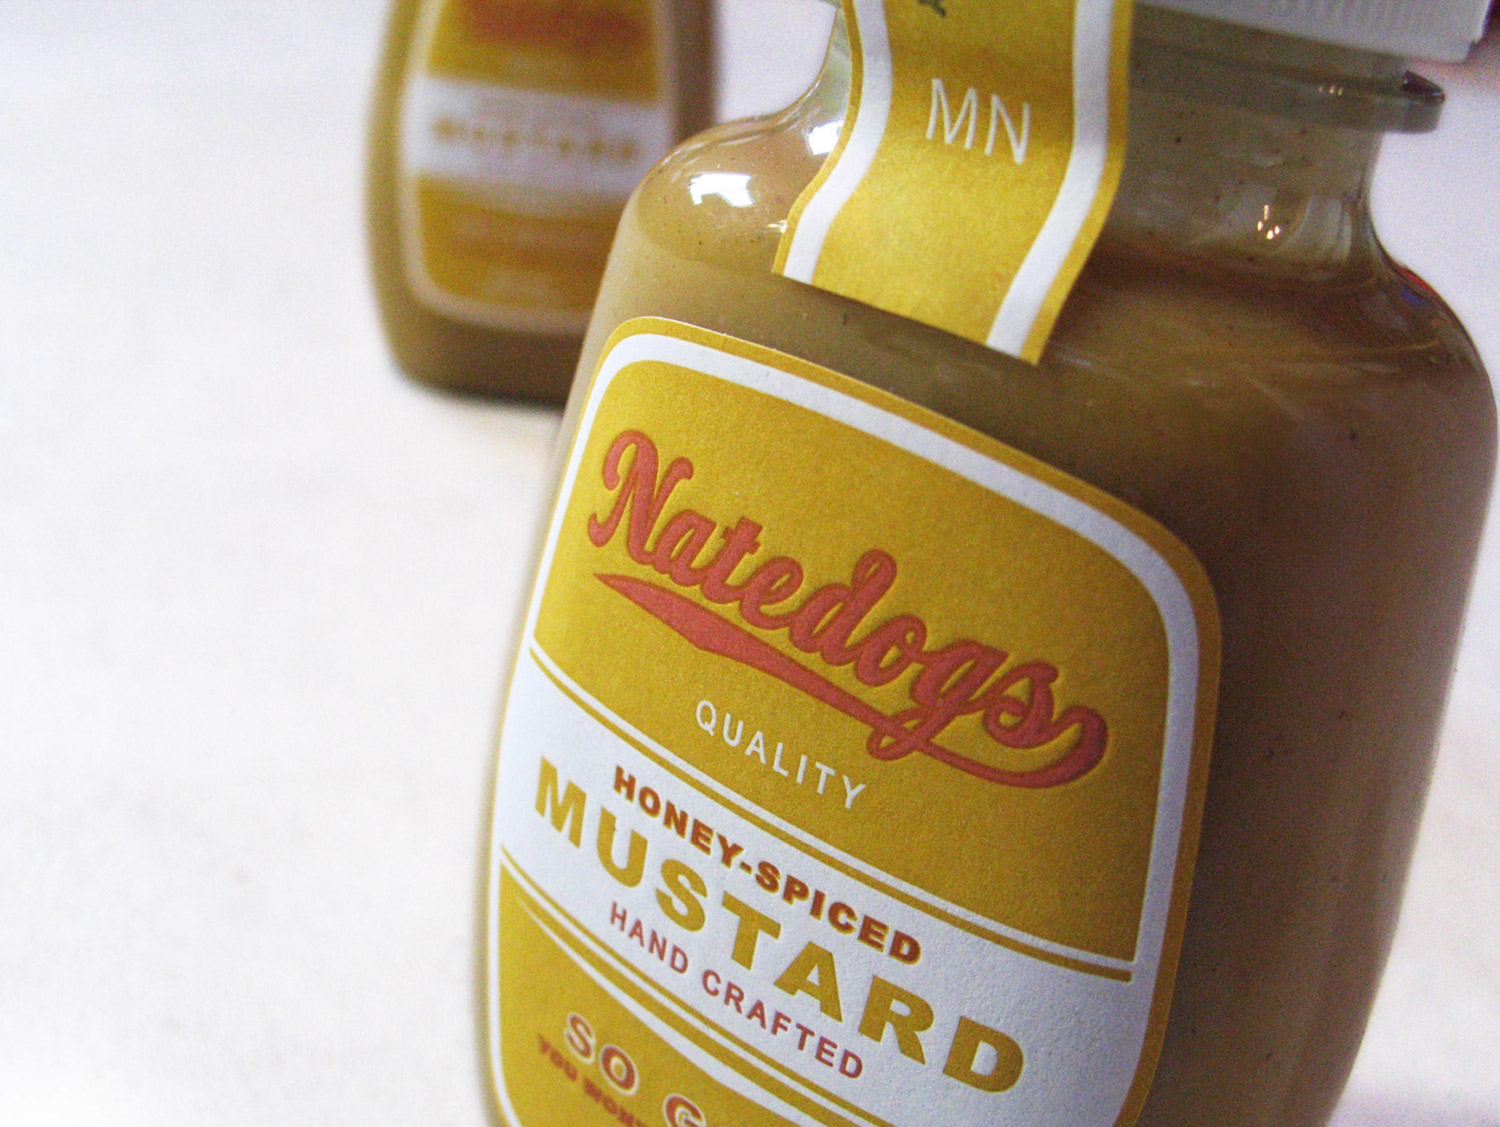 Natedogs-Mustard-Packaging-07.jpg